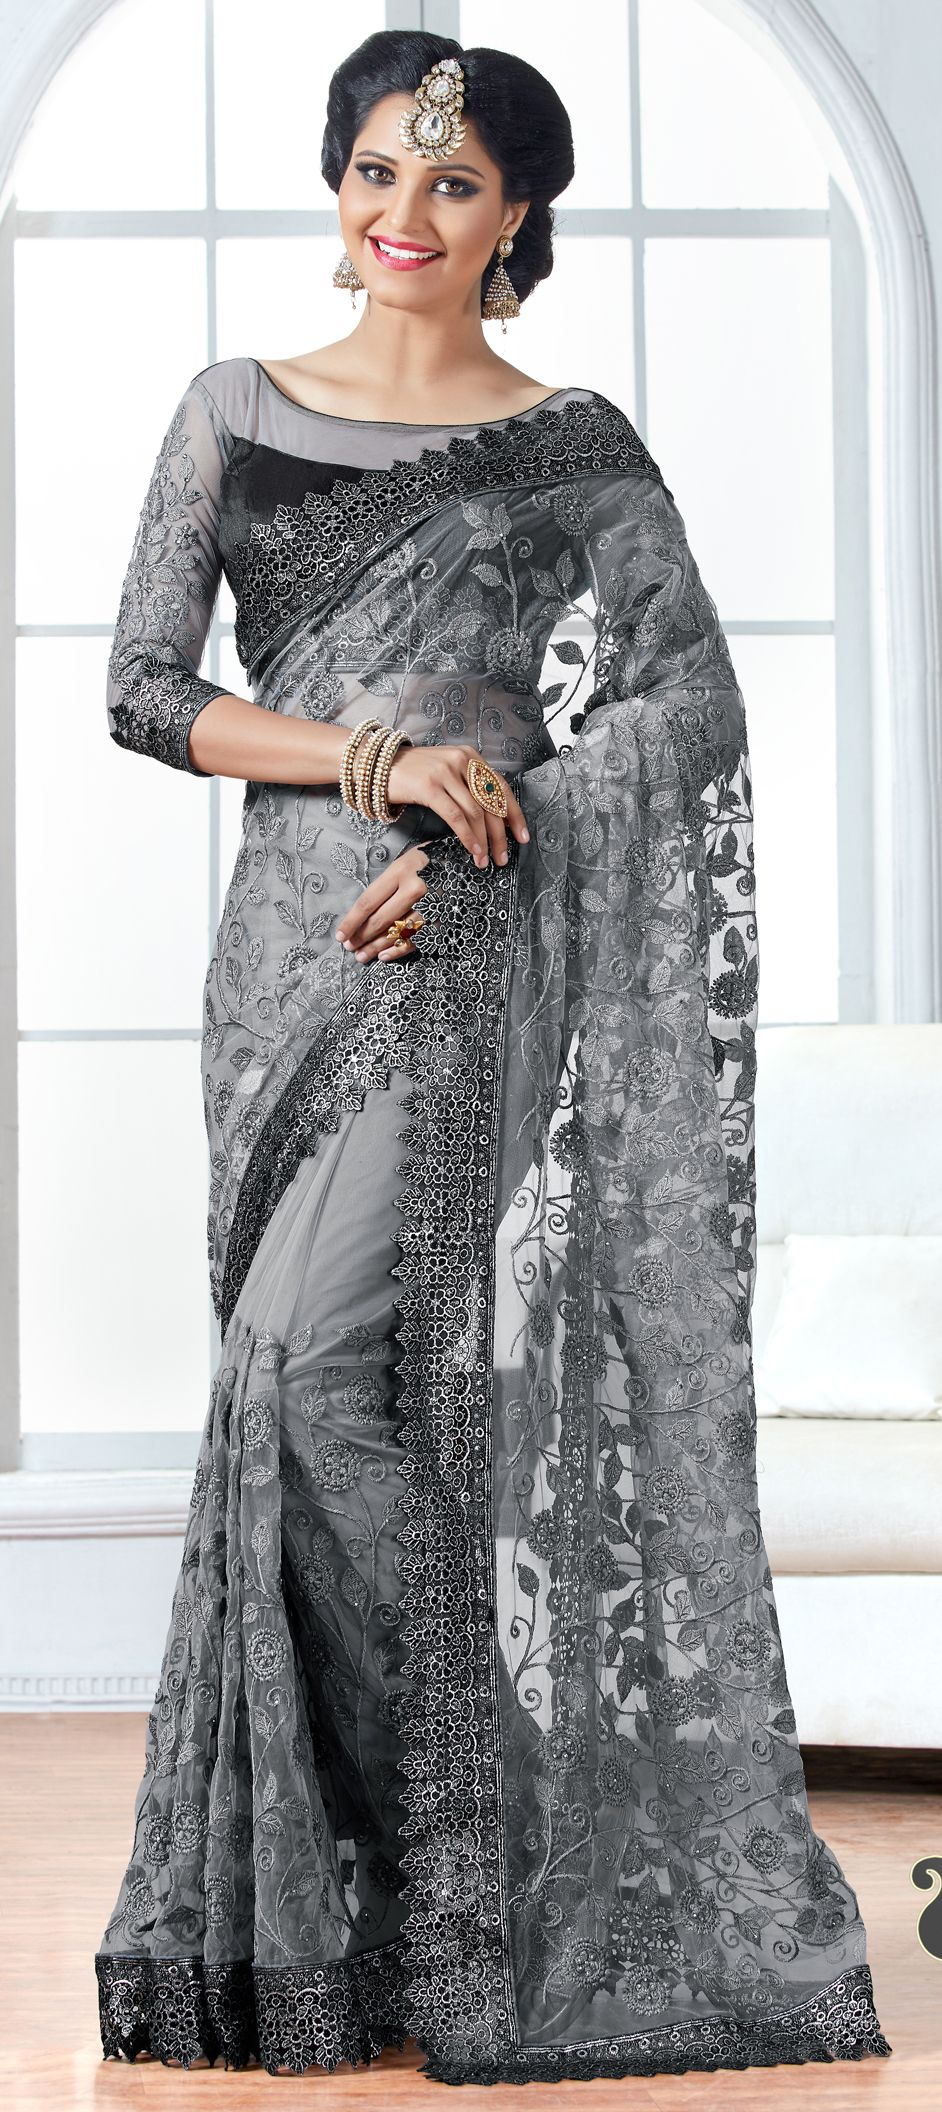 8b6e4512f50495 722203: Black and Grey color family Embroidered Sarees, Party Wear Sarees  with matching unstitched blouse.